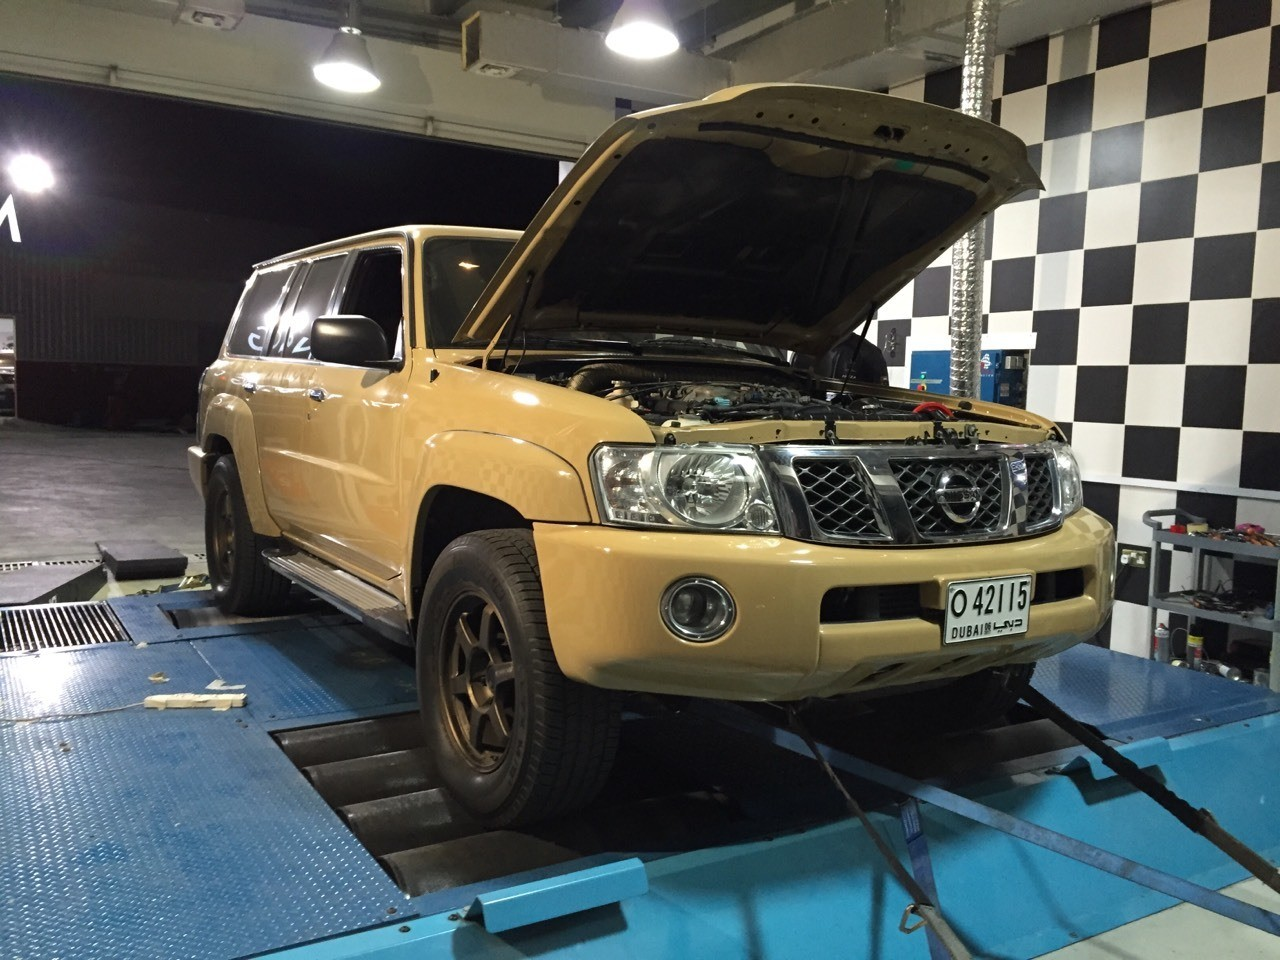 ihash gets turbo and tuning for Nissan patrol 4800